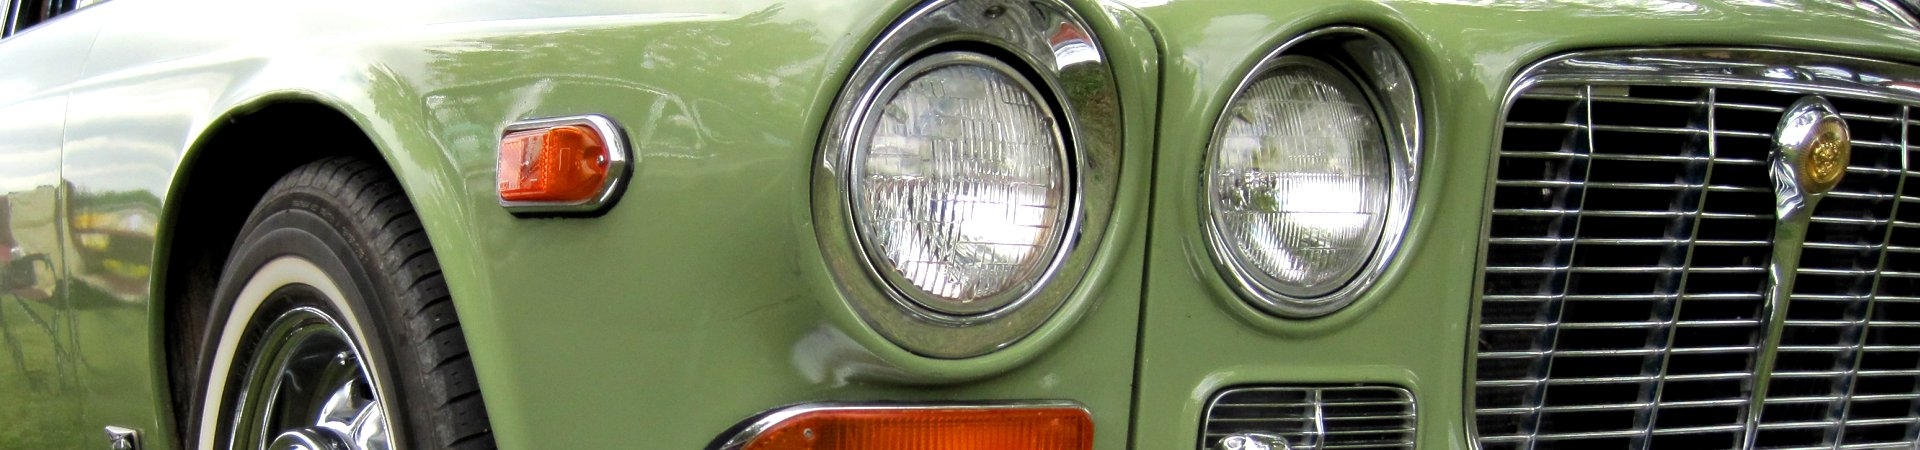 FrontPage_XJ6Front